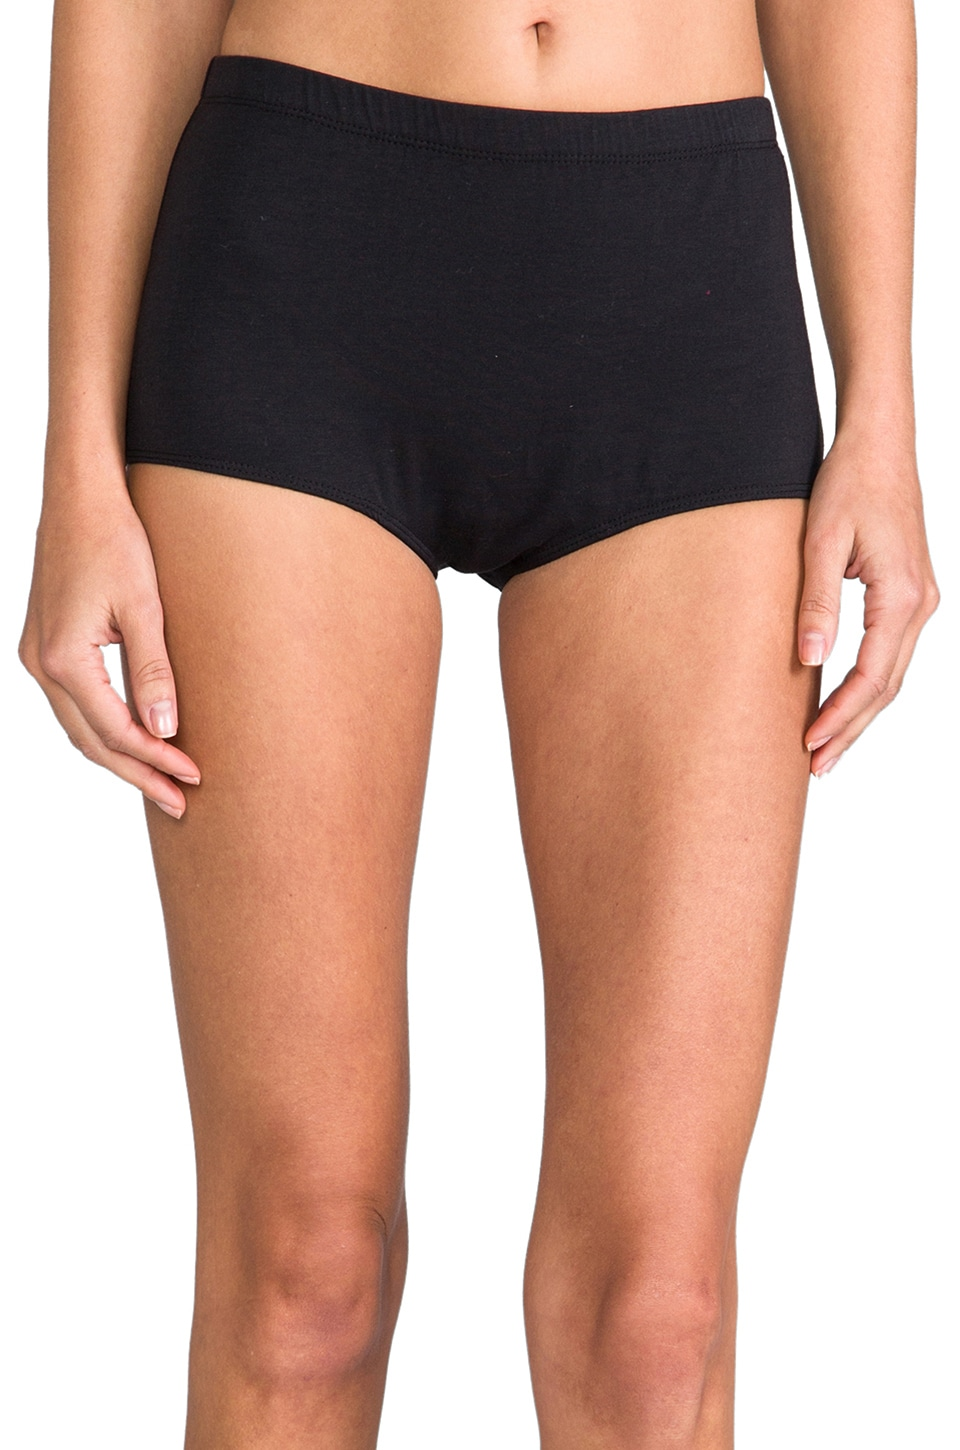 Obey Annabelle Hot Shorts in Black